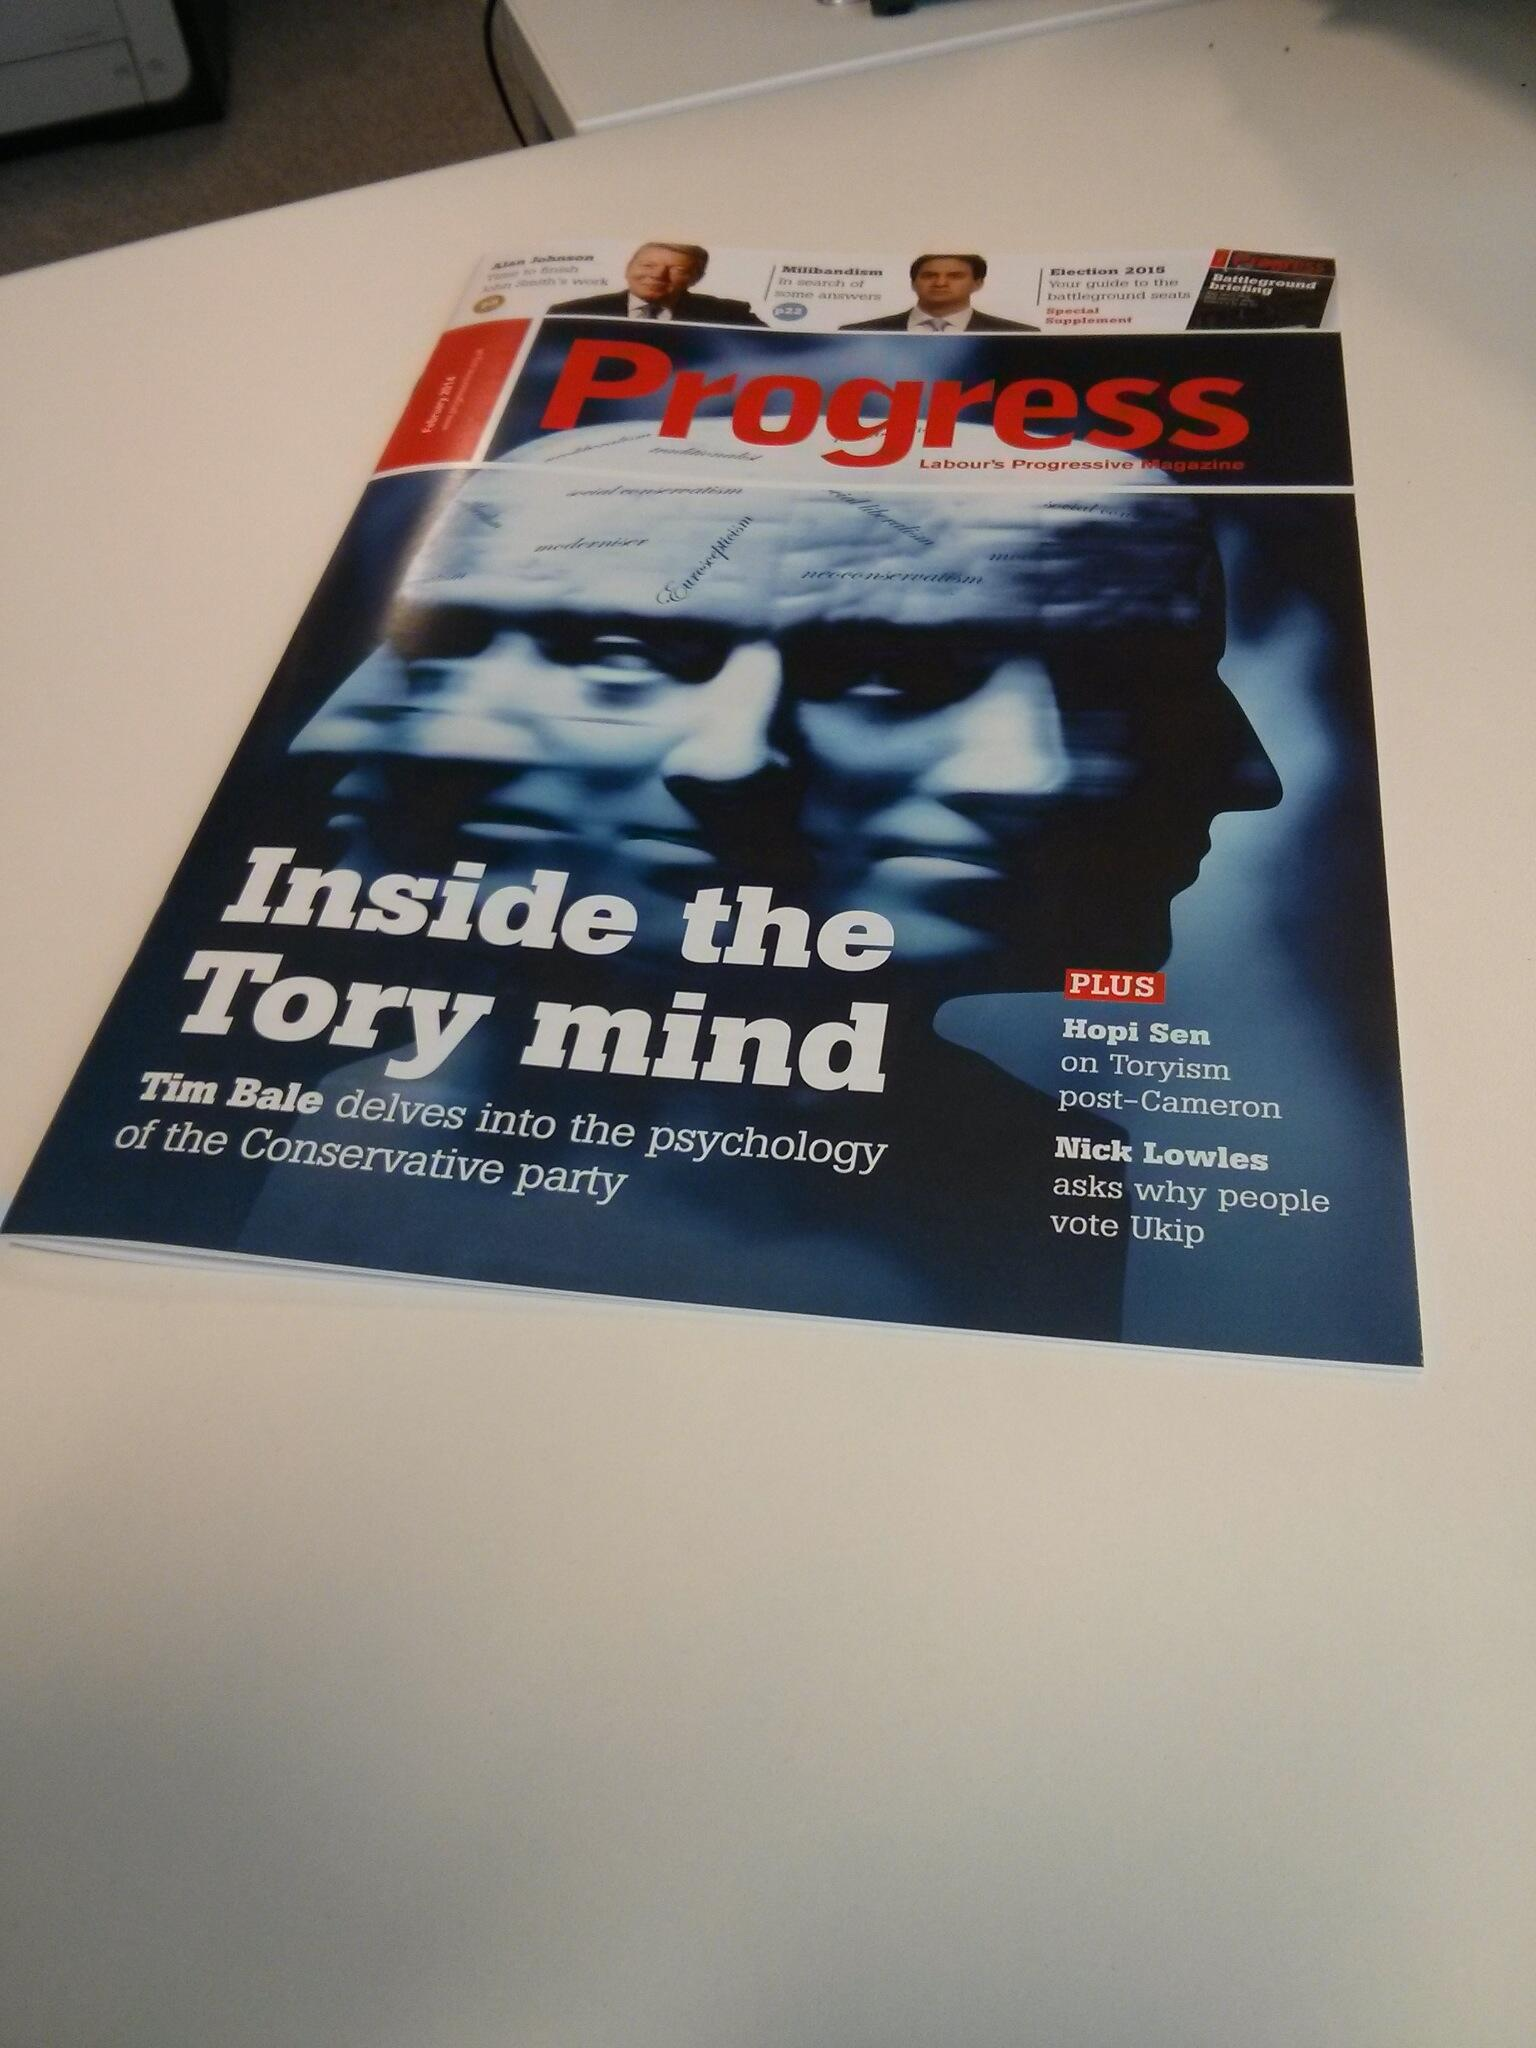 Just arrived - Feb edition of Progress! Lead story: Inside The Tory Mind by @ProfTimBale http://t.co/8Rx56QKE38